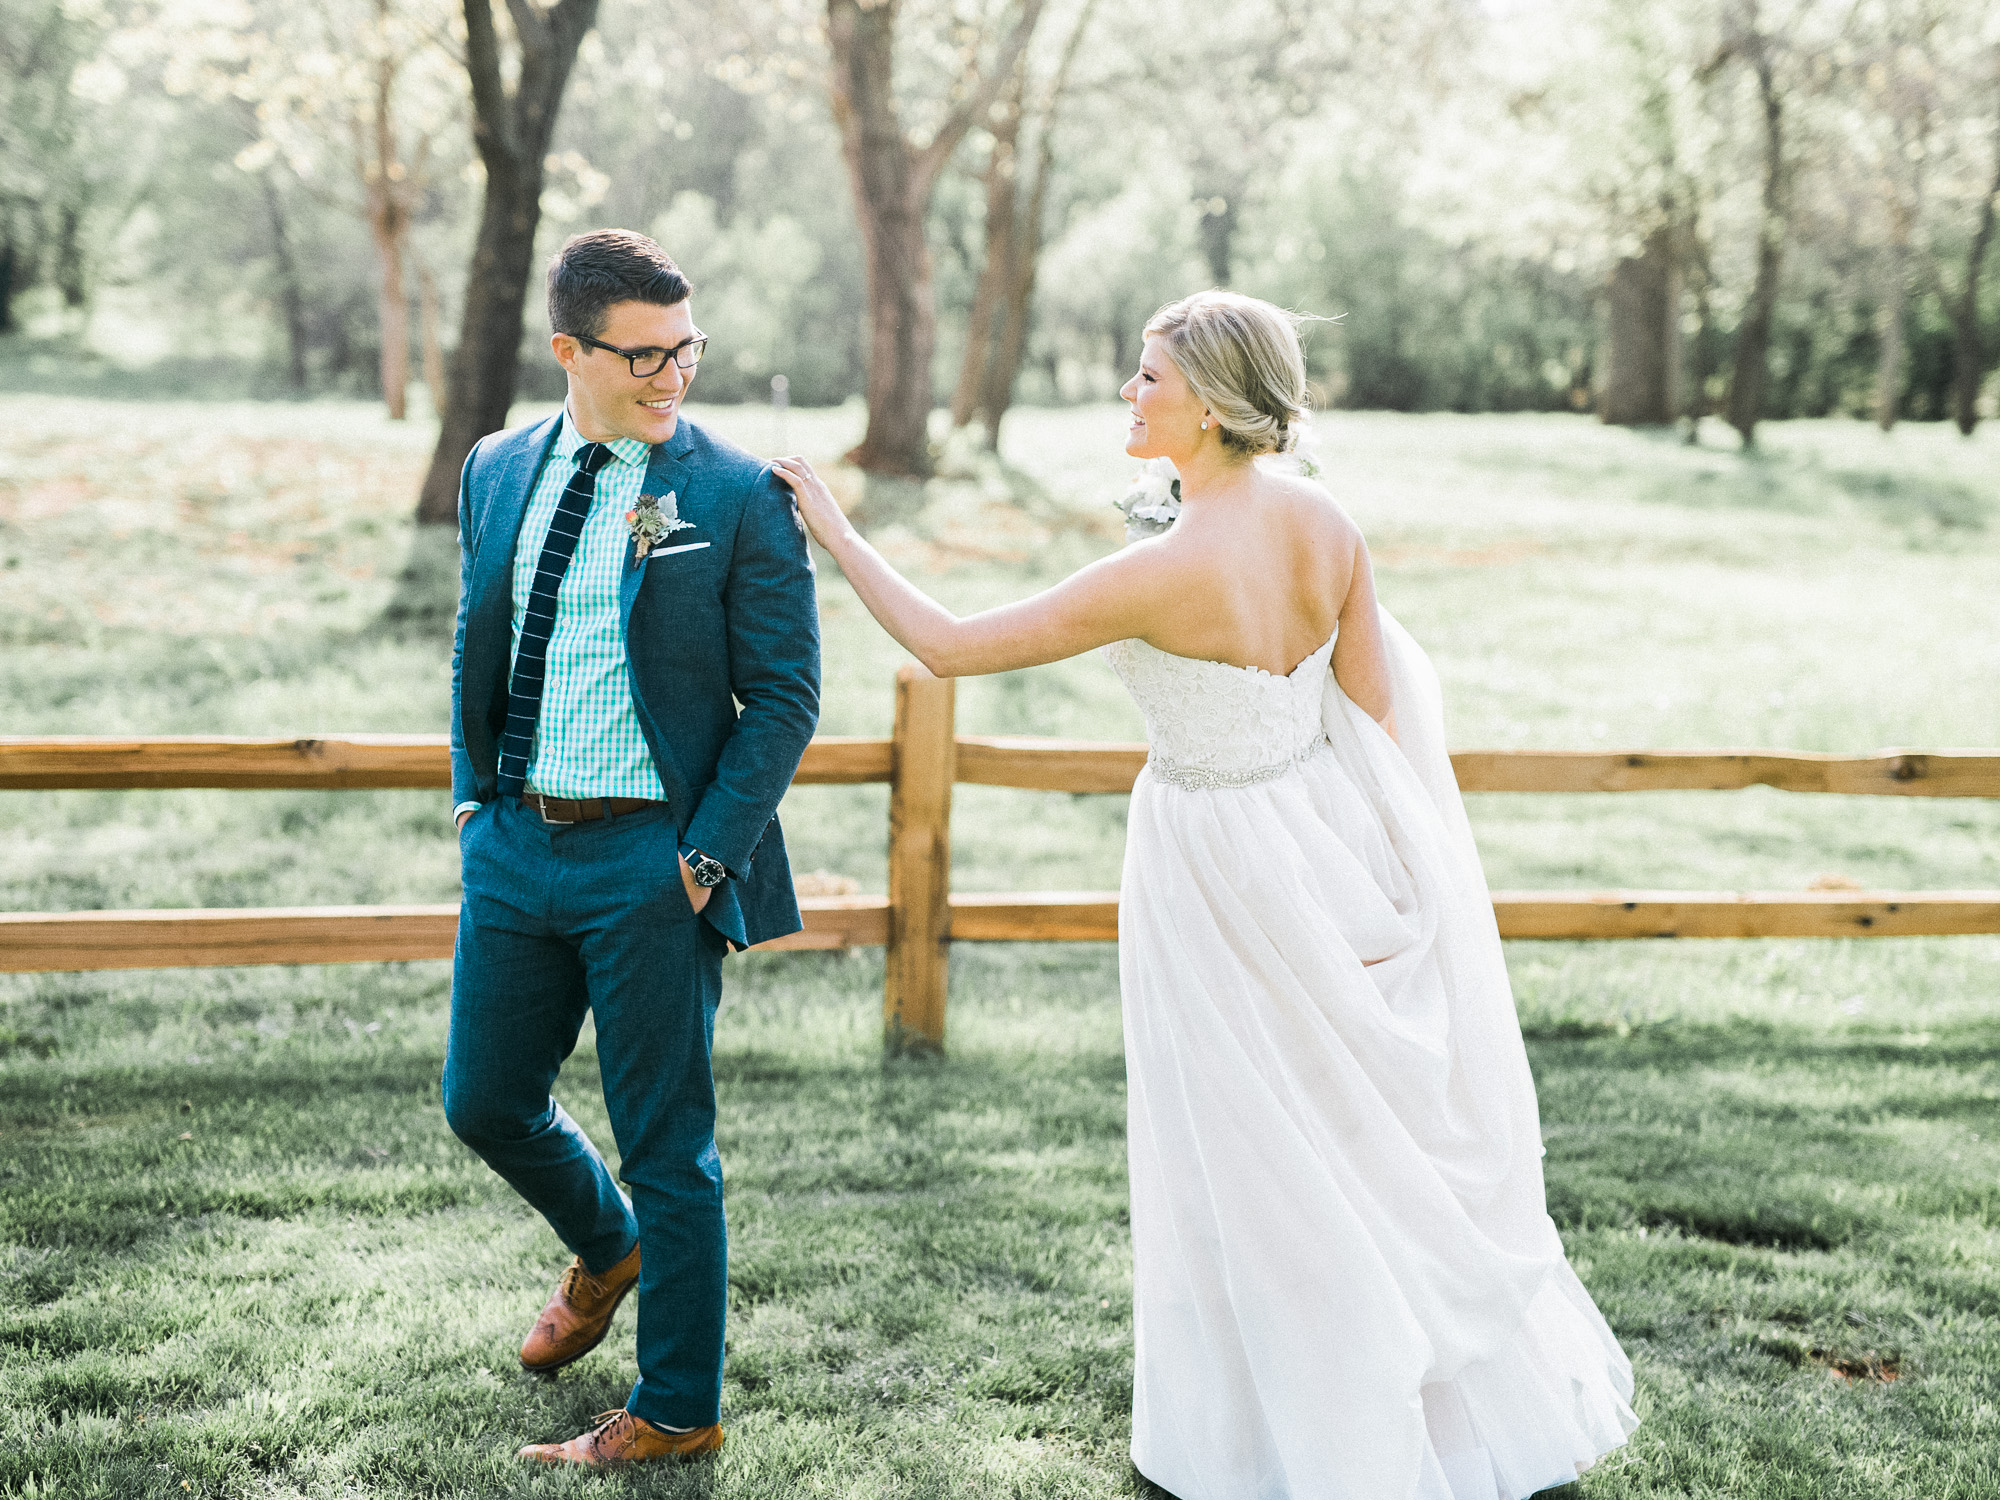 Chisolm_Springs_Wedding_OKC_Film_photographer-4.jpg